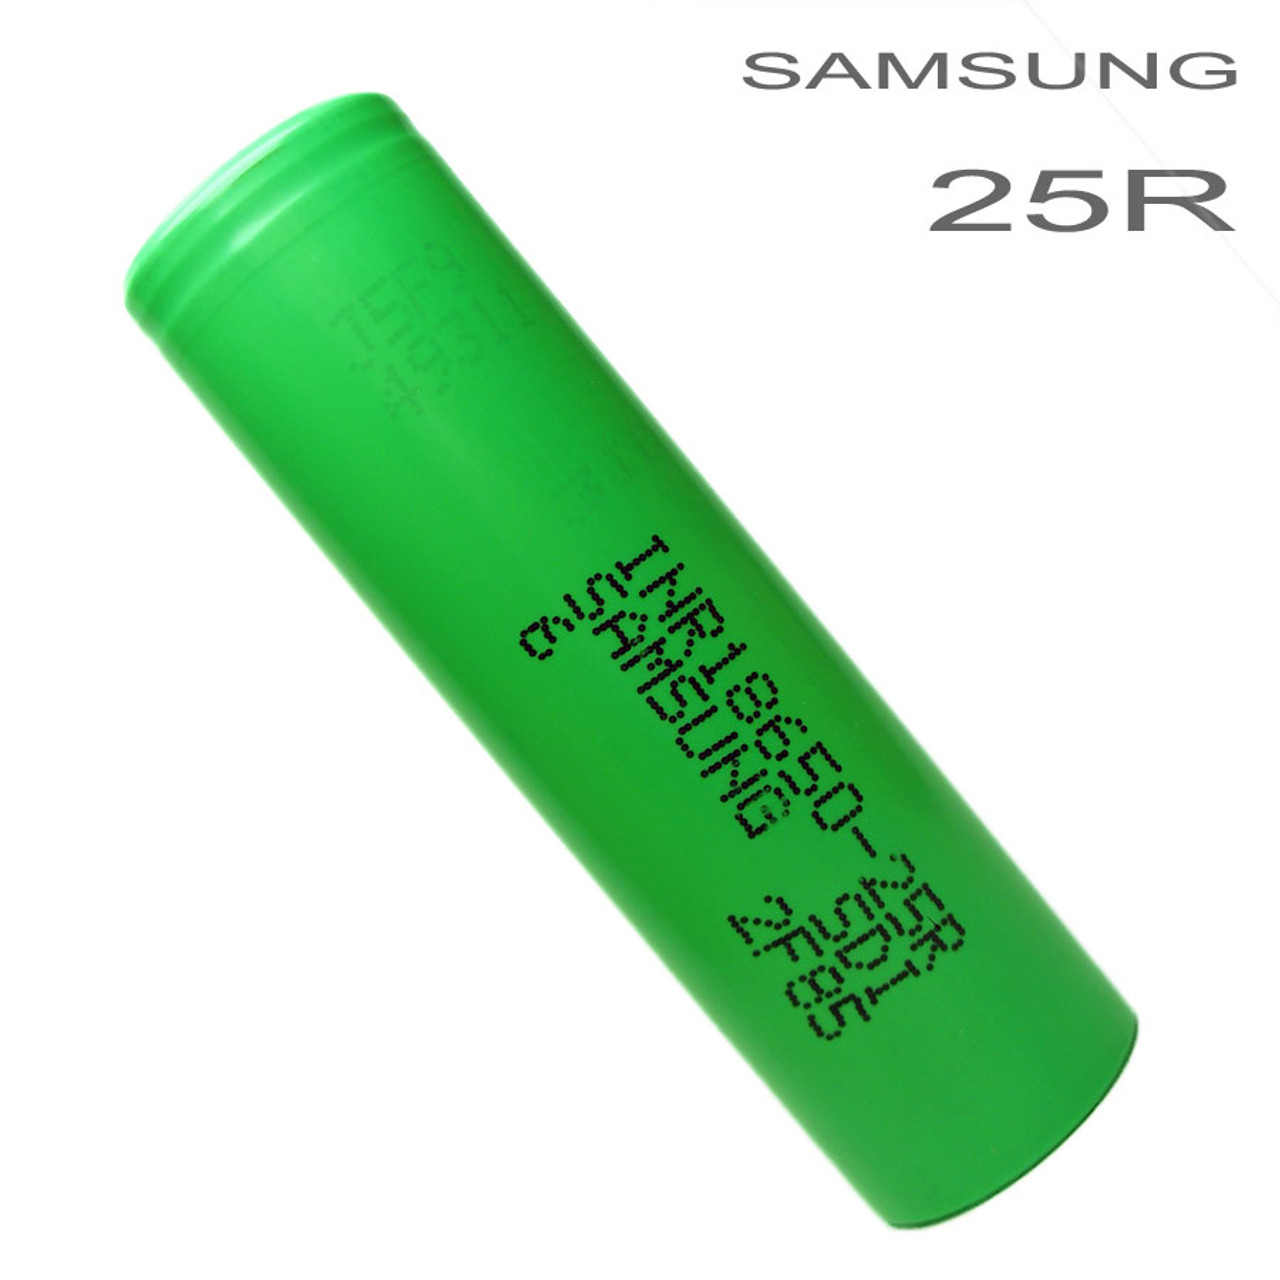 4 50 Samsung 25r 18650 2500mah High Current Discharge